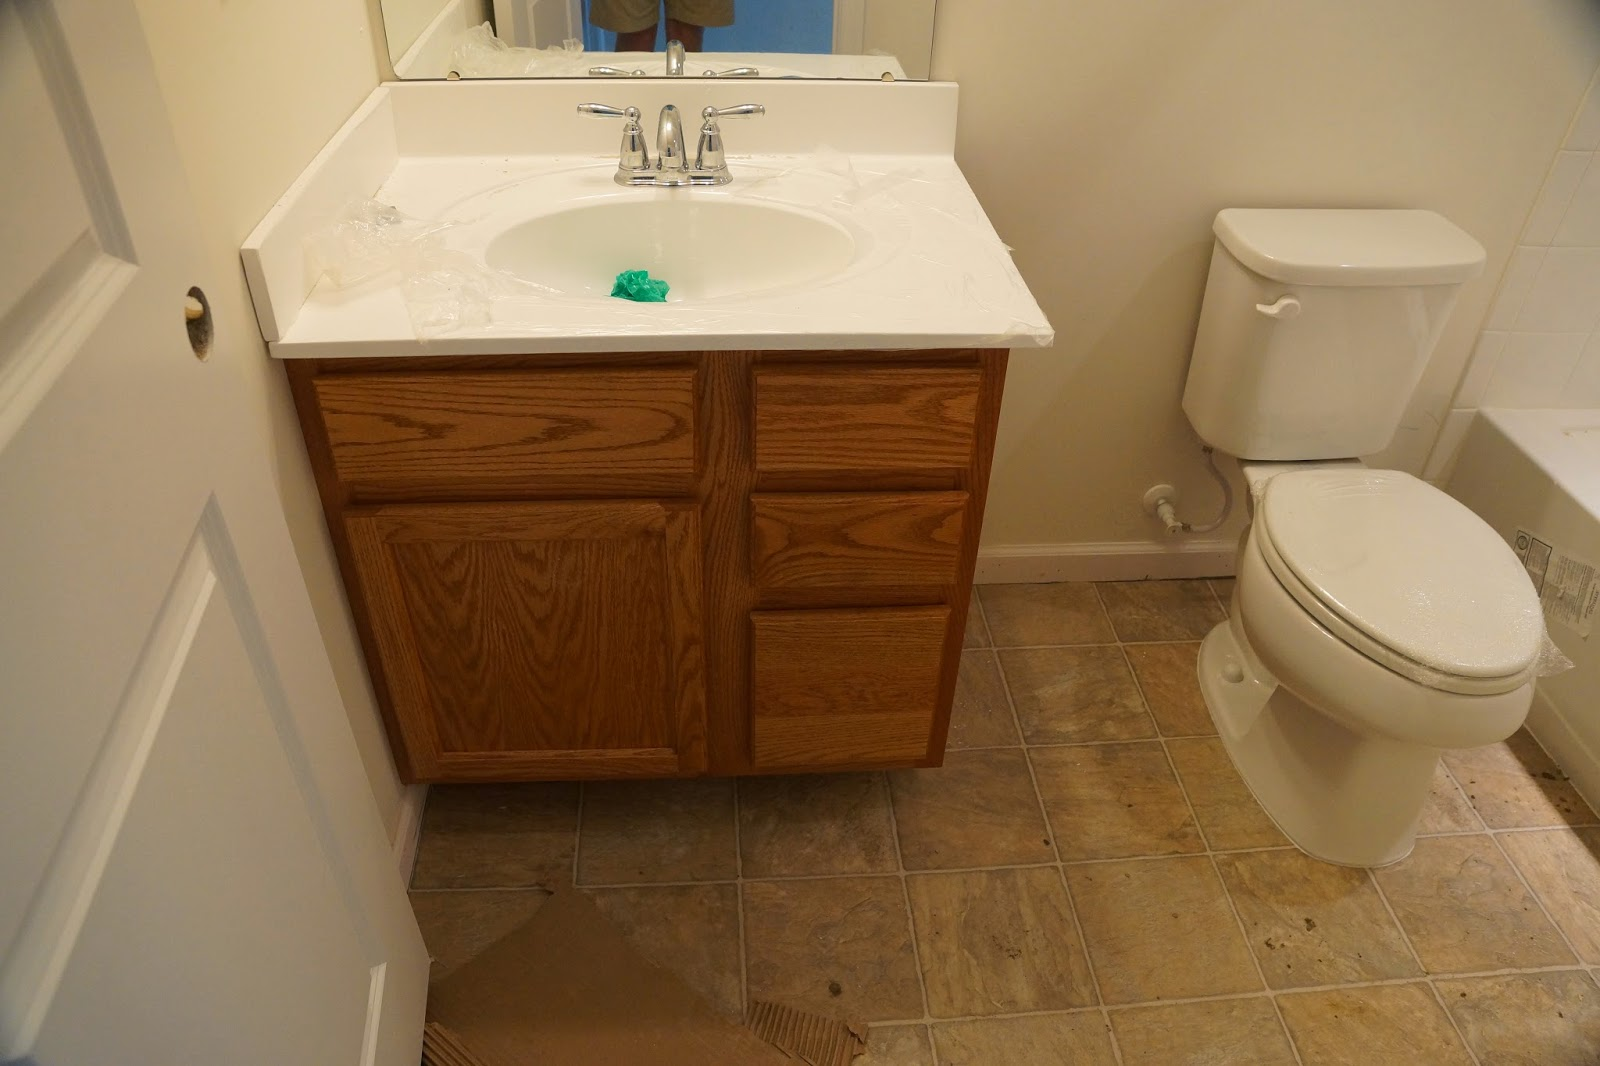 Picture of the hallway bathroom sink and toilet